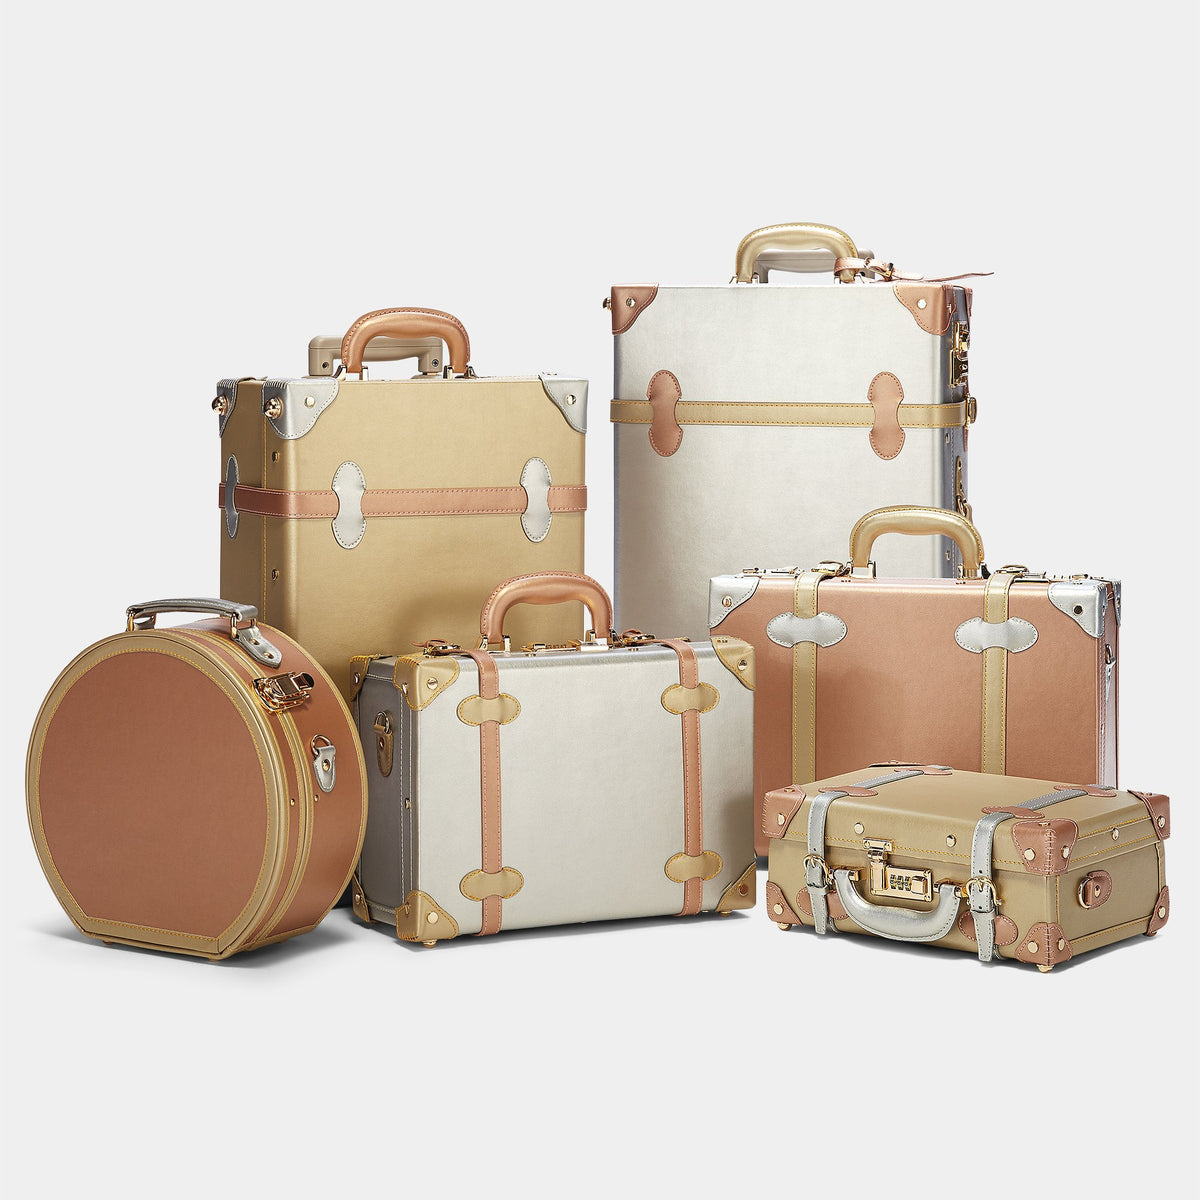 The Alchemist Stowaway - Retro-Style Cabin Luggage - Stowaway alongside 4 other matching cases in the Alchemist collection